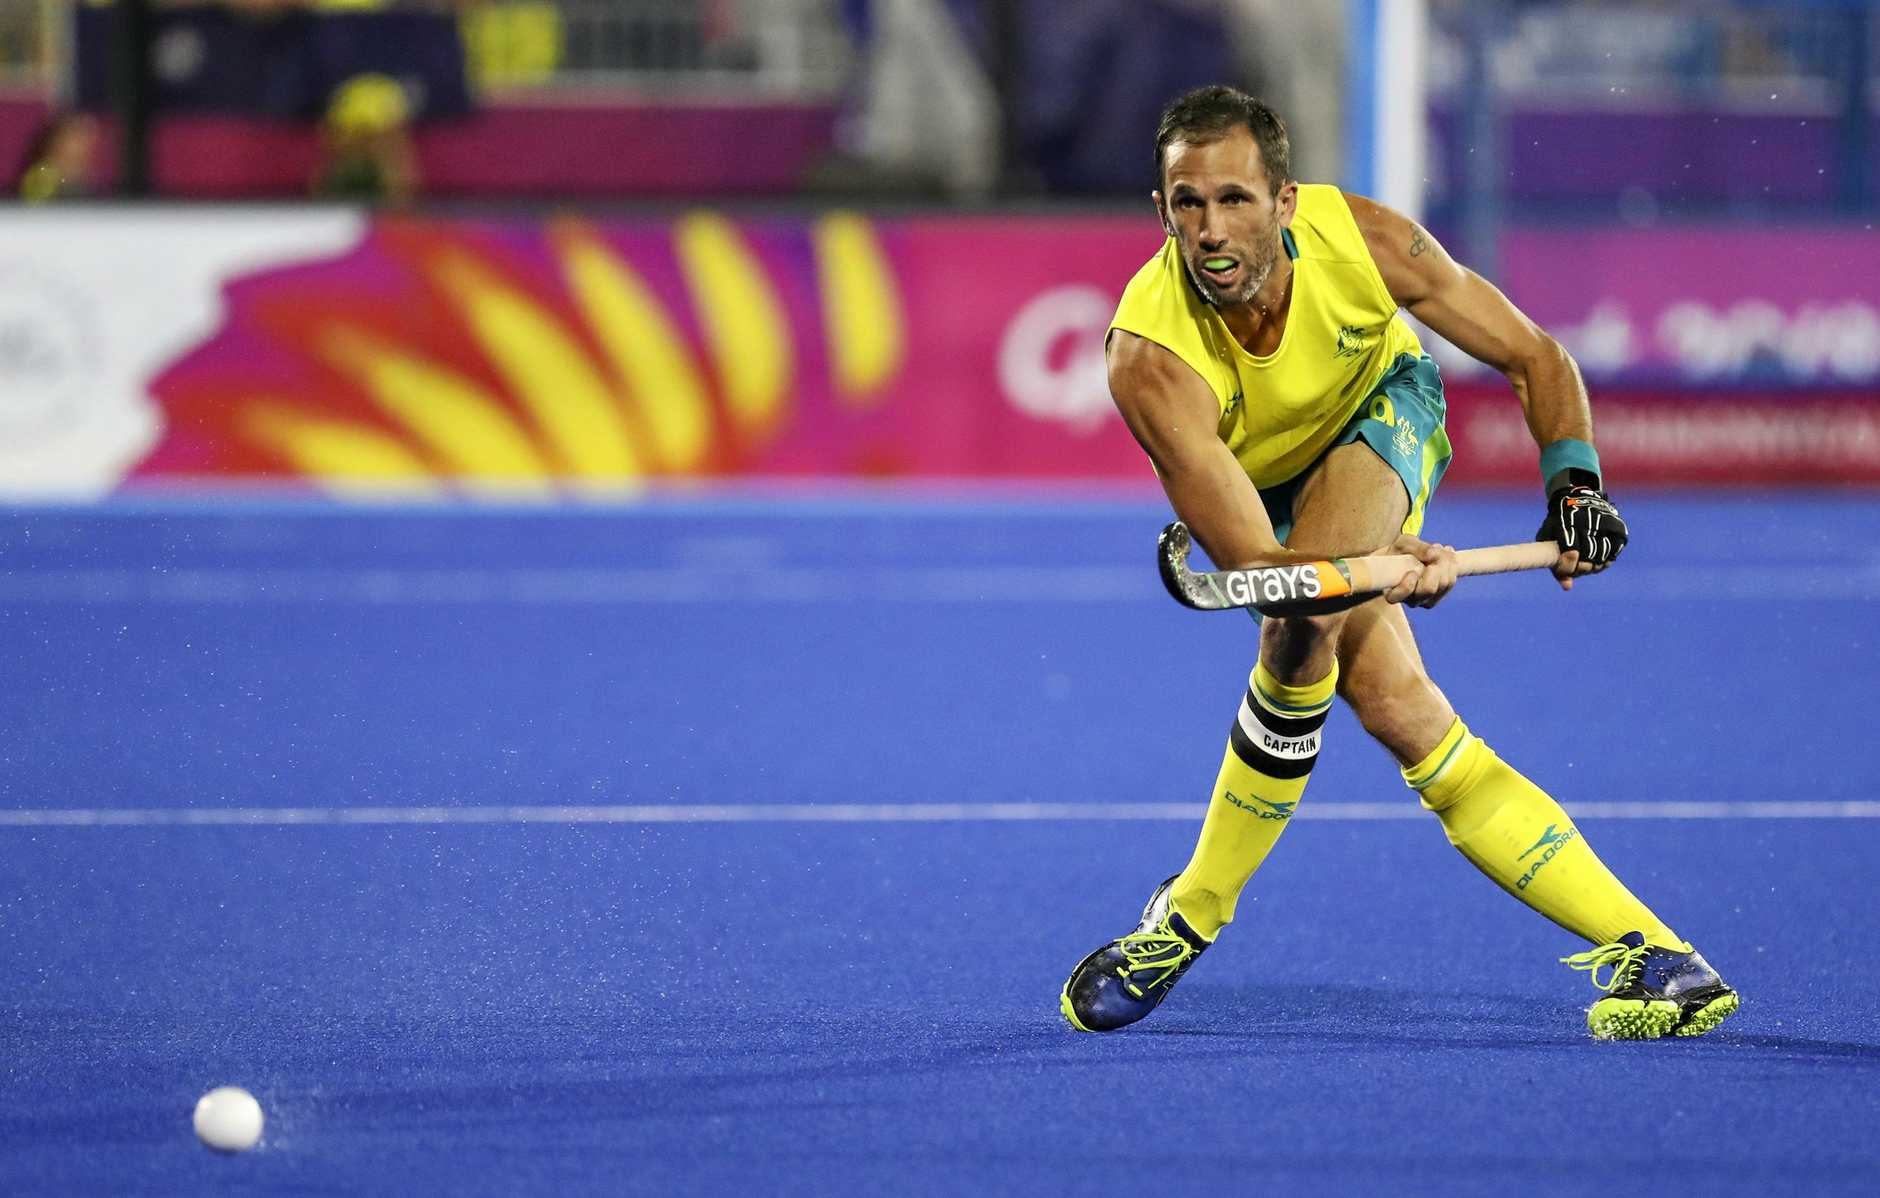 Homegrown hockey hero Mark Knowles will take the field for the Legends game.